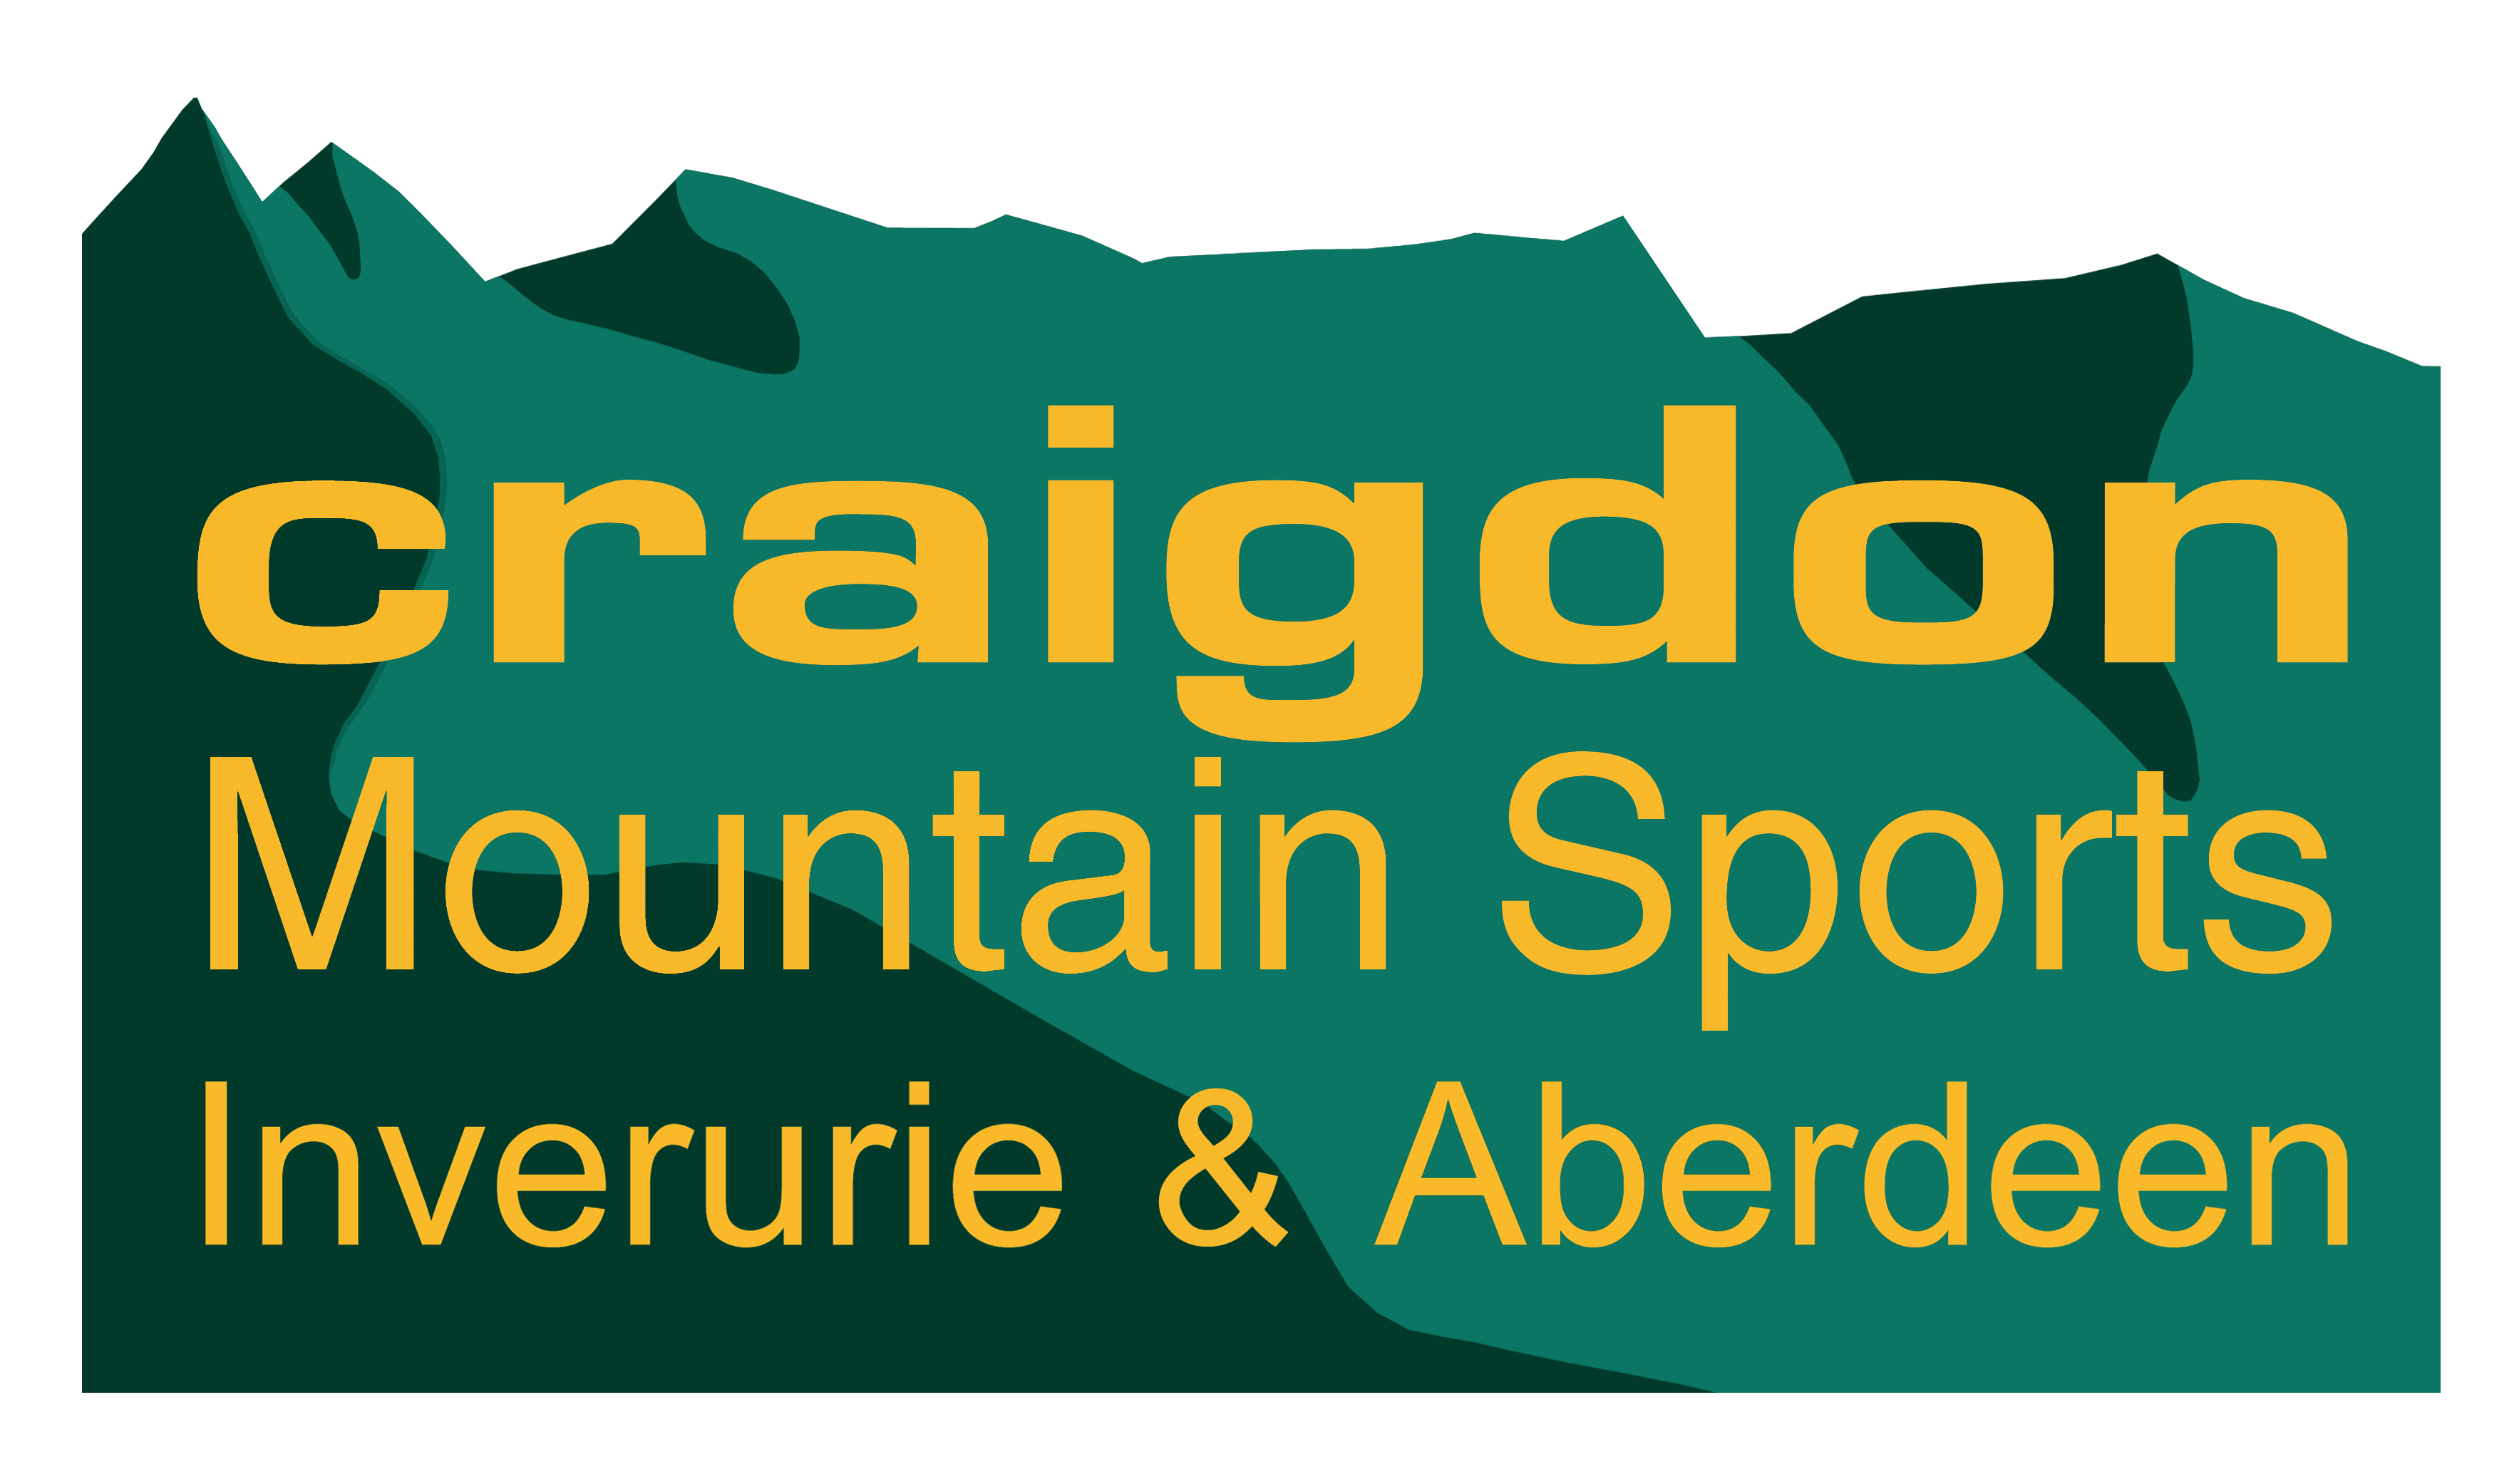 Craigdon Mountain Sports Aberdeen & Inverurie